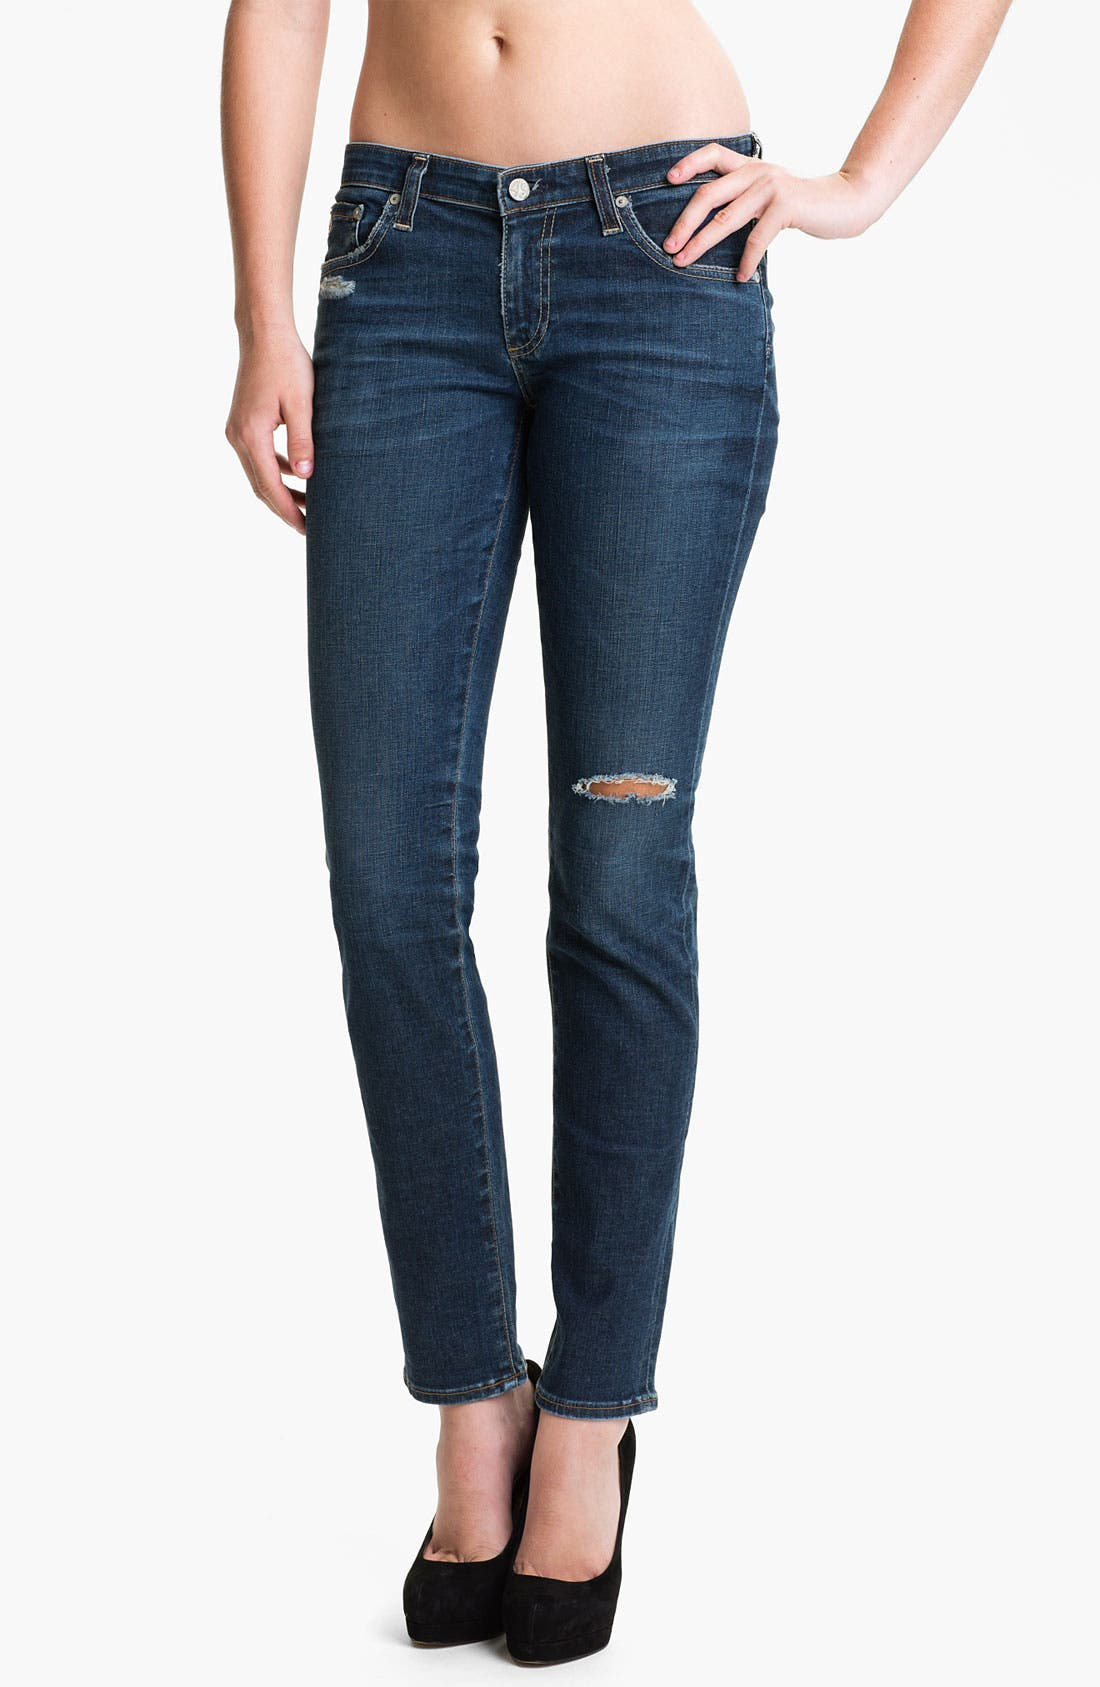 Main Image - AG Jeans 'The Stilt' Cigarette Leg Jeans (Six Year Rinse)